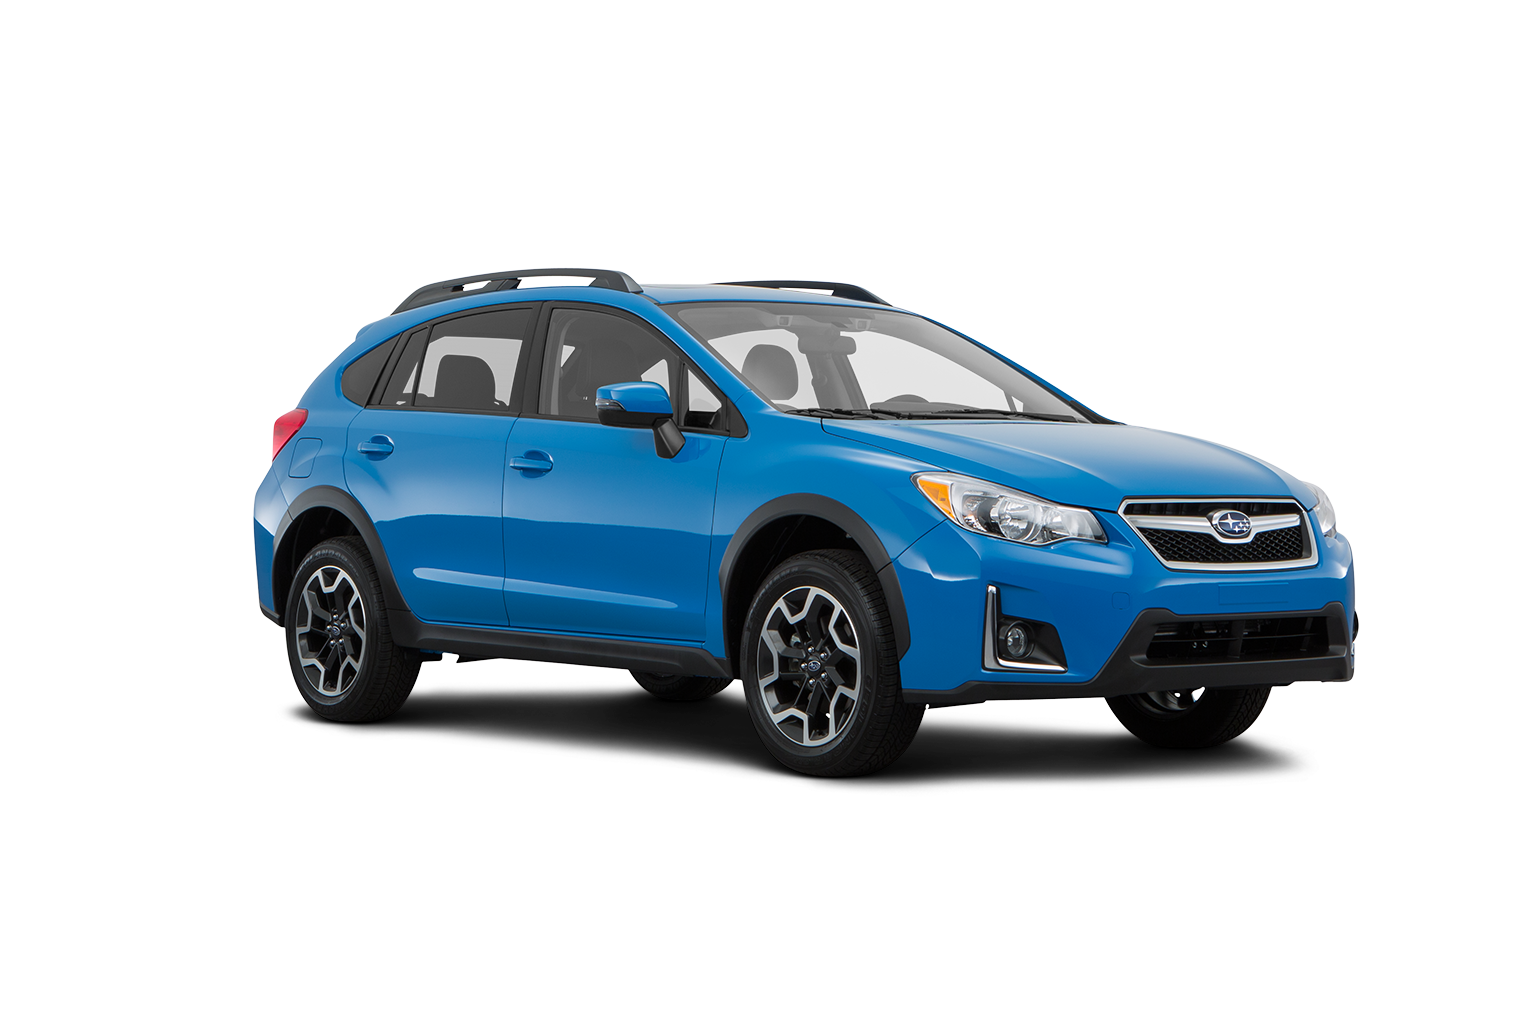 Build Your Own Subaru >> Visit The Official Build Your Own Subaru Site To Build The